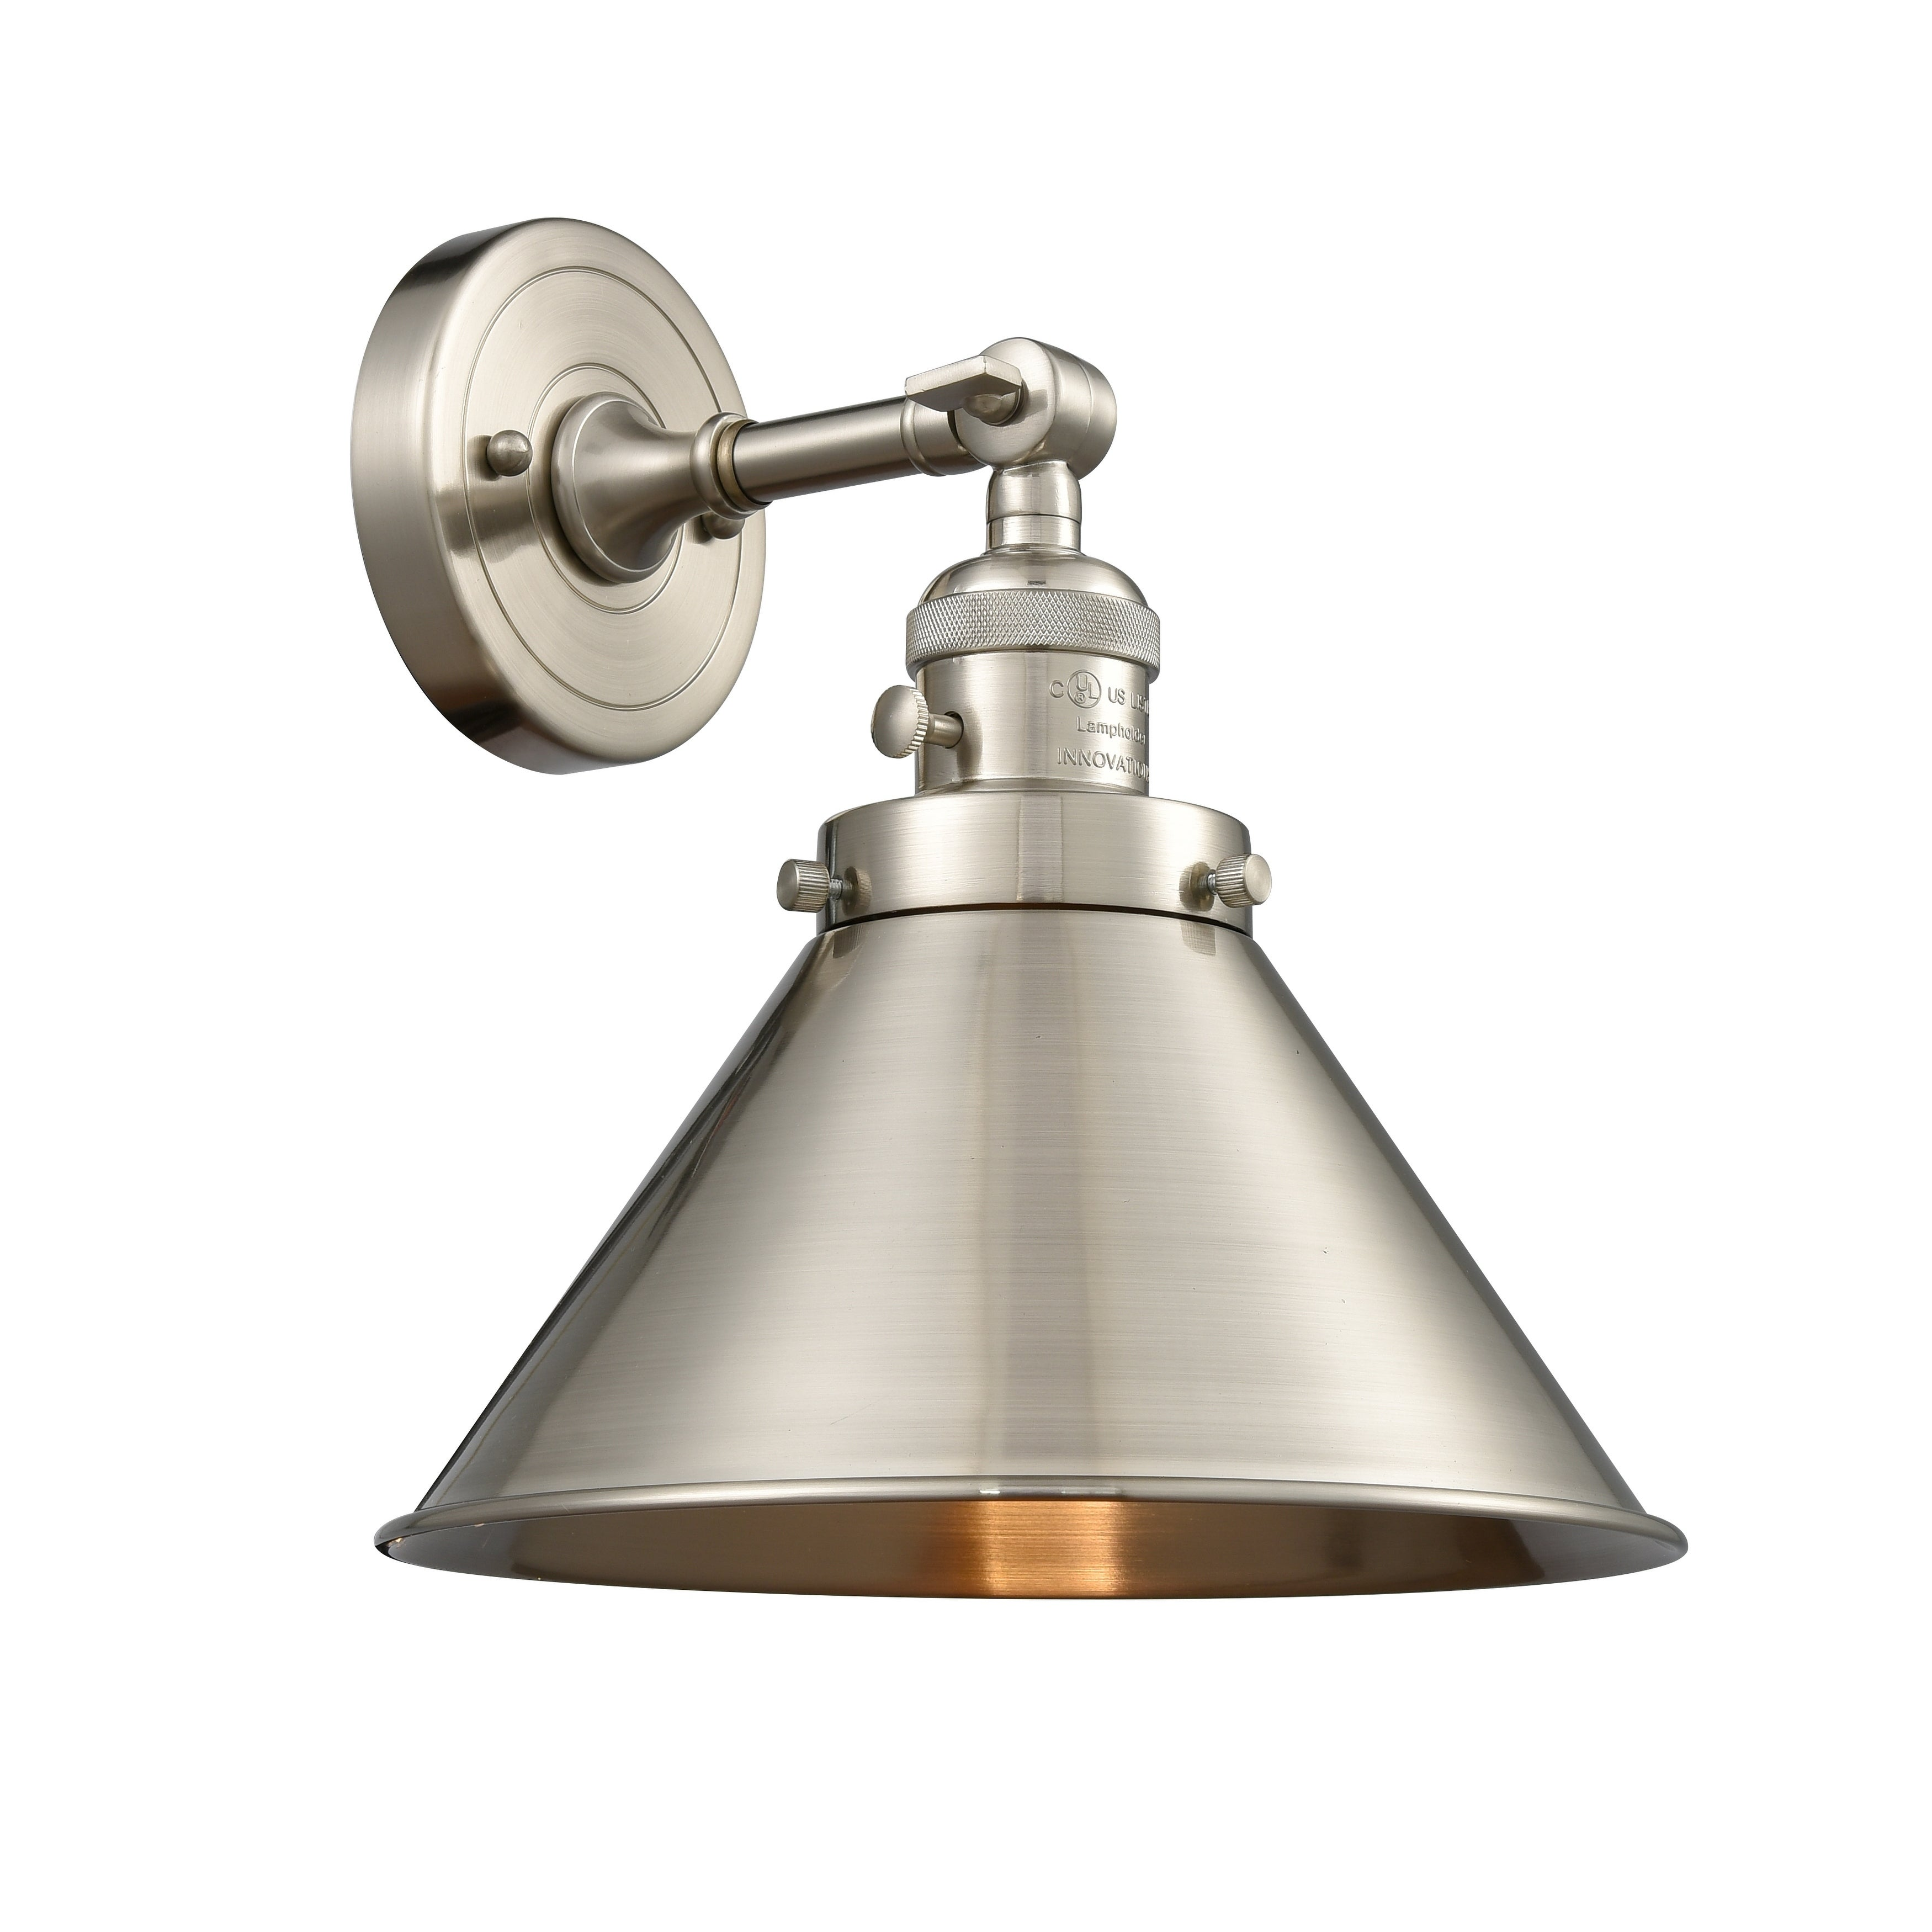 Innovations lighting briarcliff 1 light adjustable sconce with switch